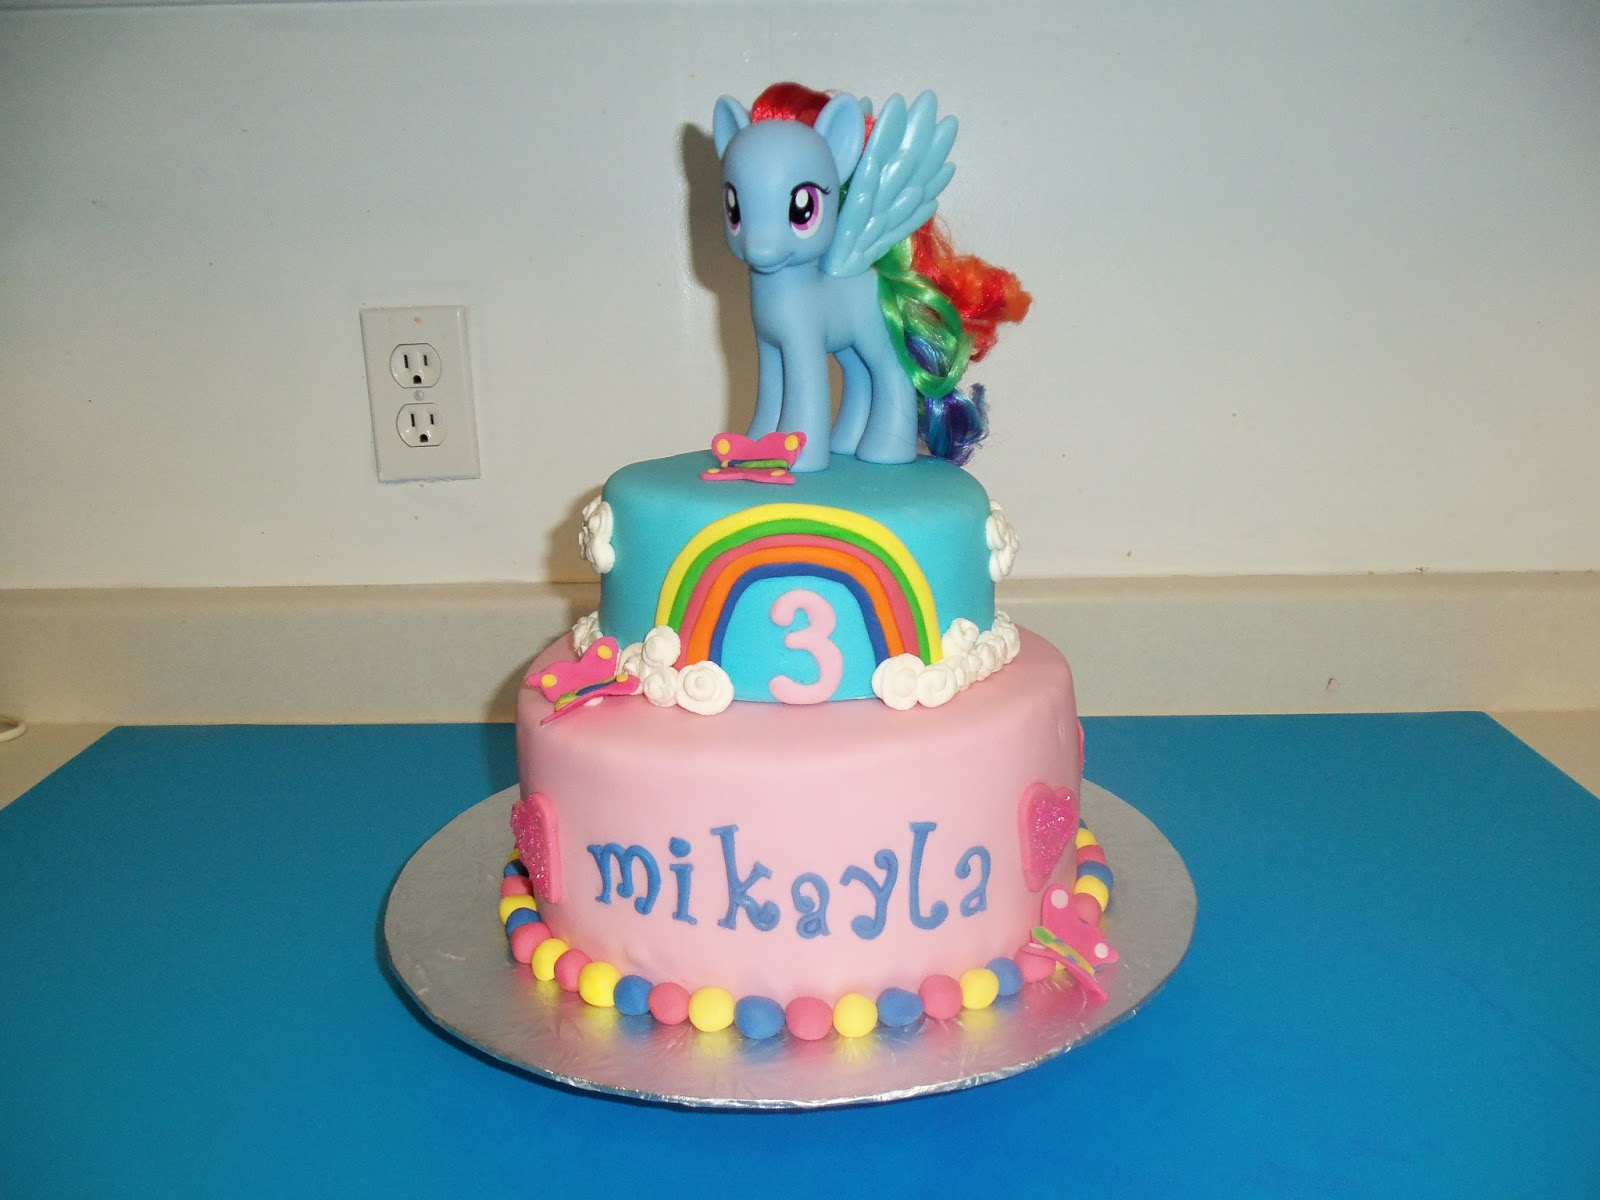 Sugarbakers Cake Design My Little Pony Birthday Cake